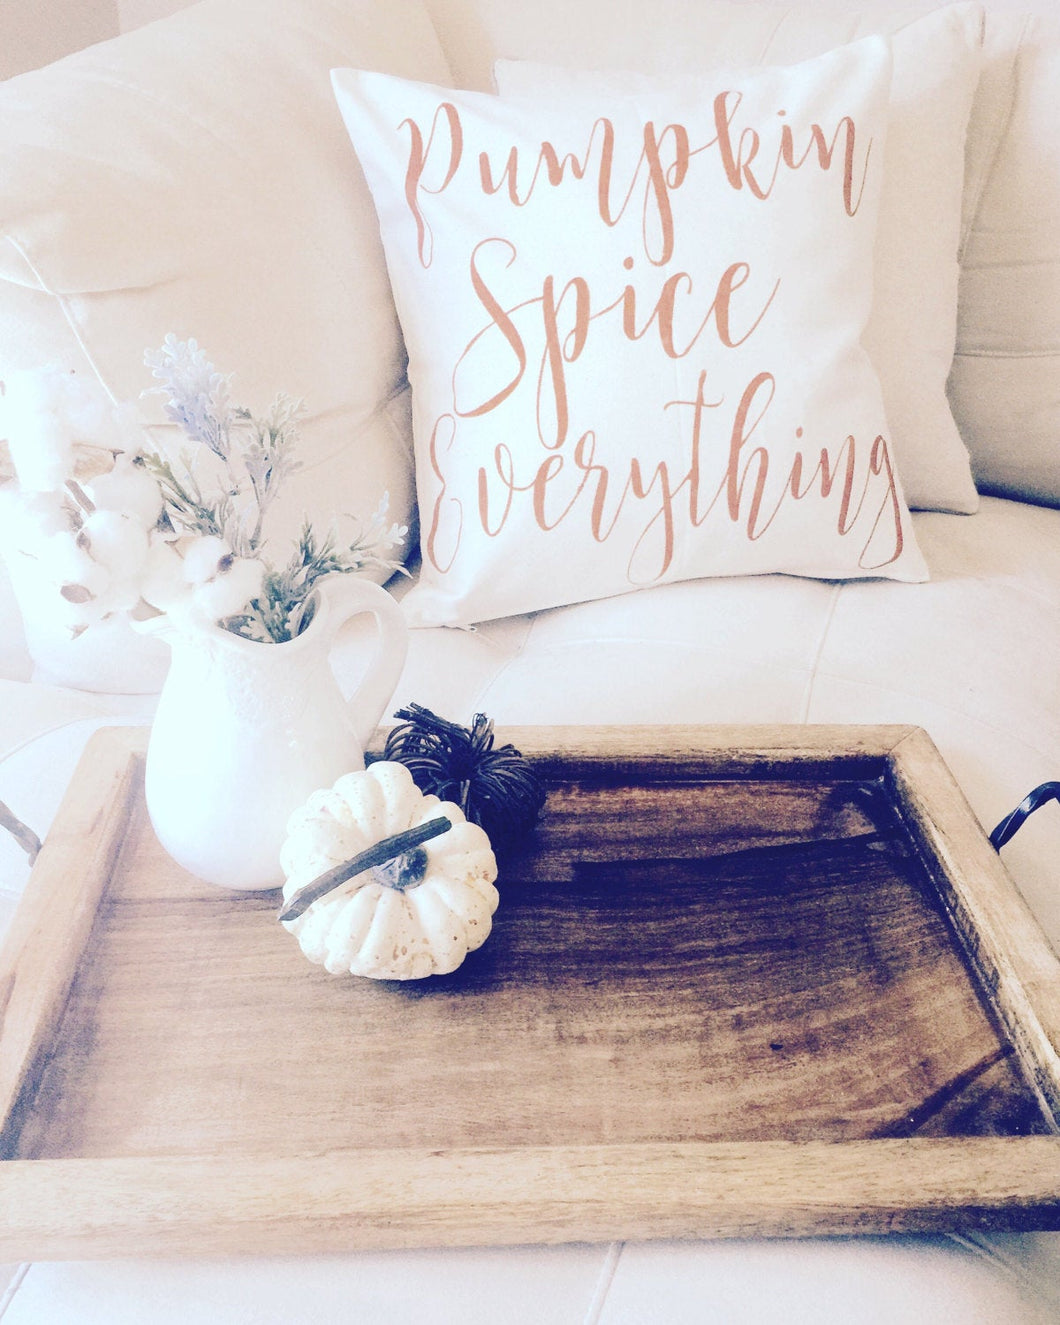 Pumpkin Spice Everything|Pillow Cover